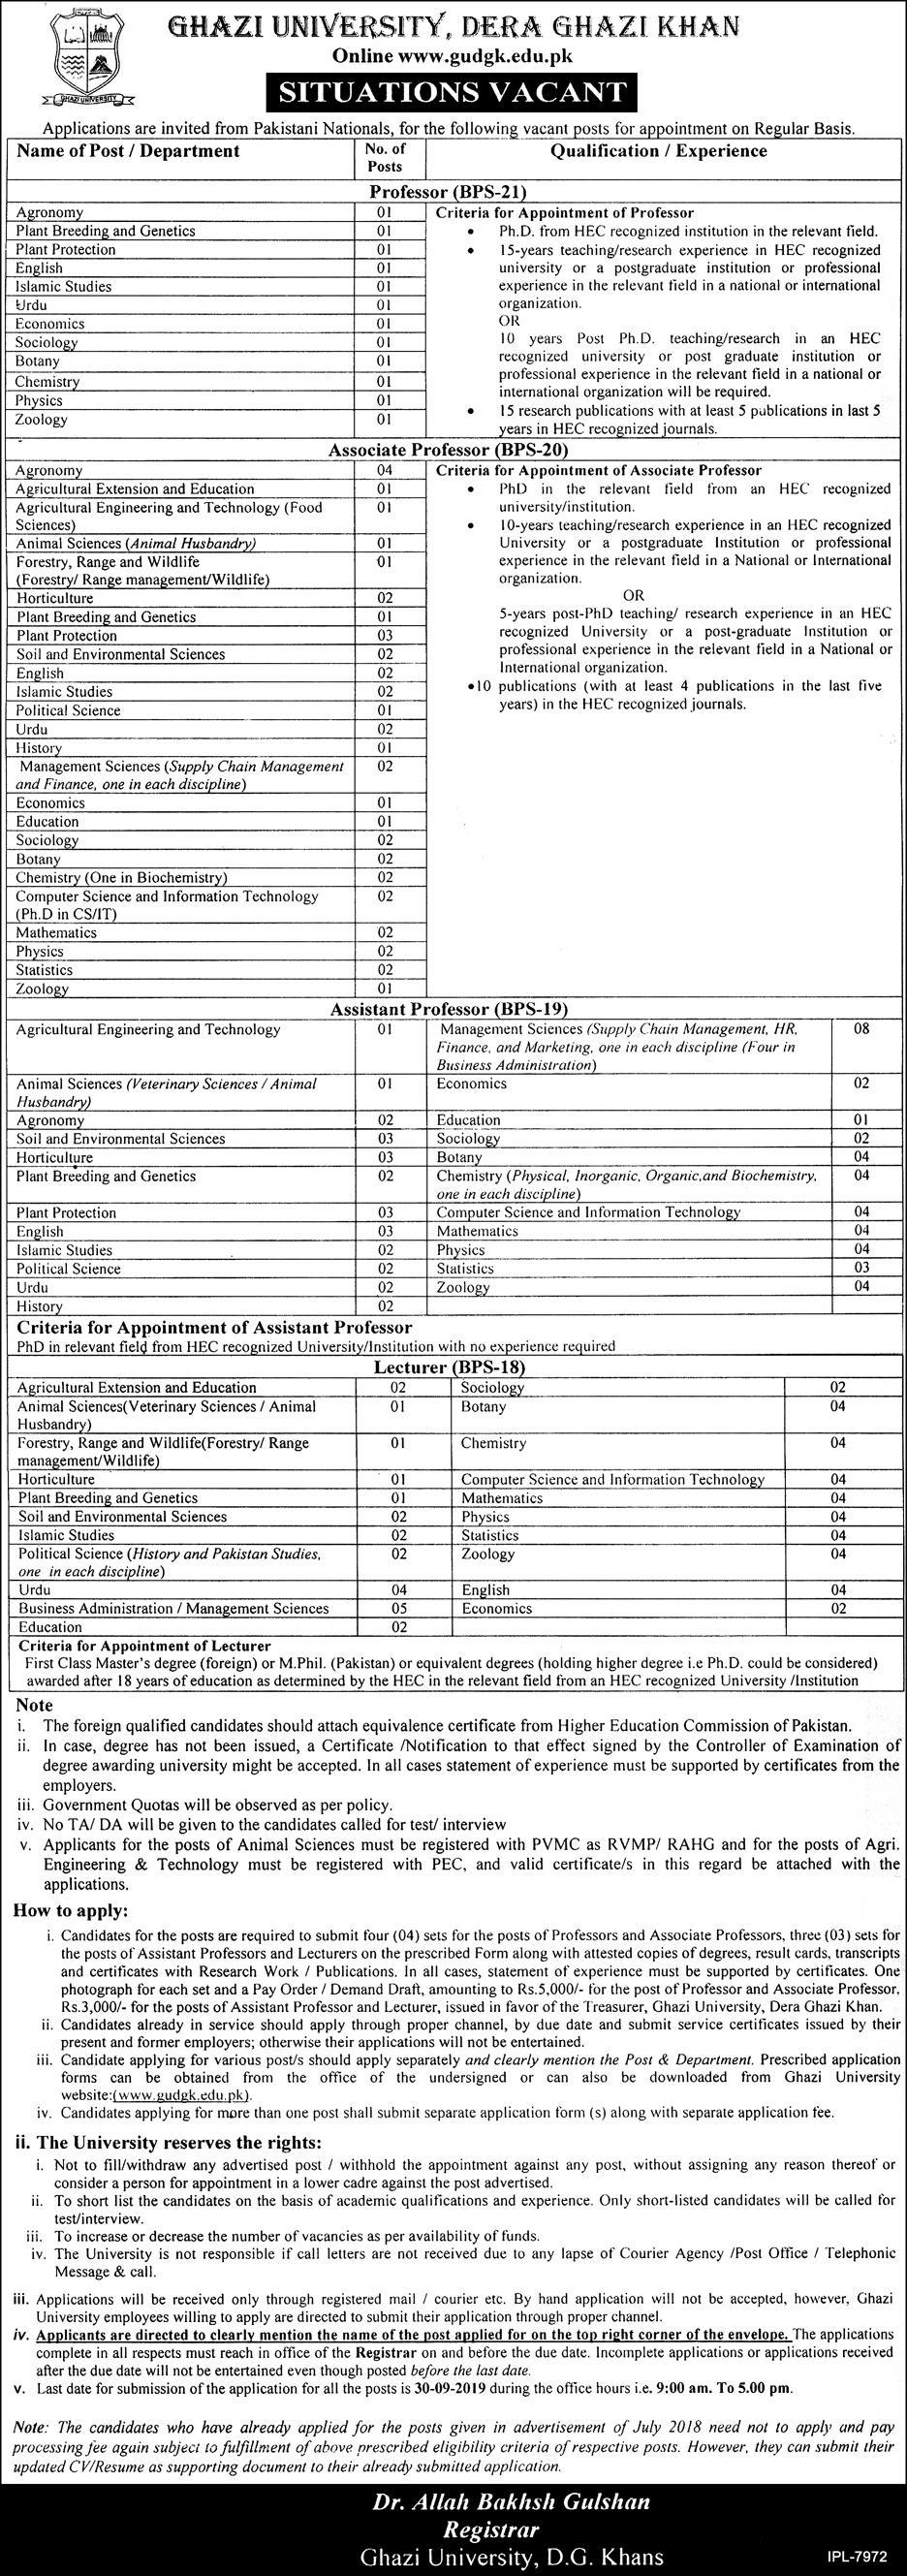 GHAZI UNIVERSITY DERA GHAZI KHAN JOBS